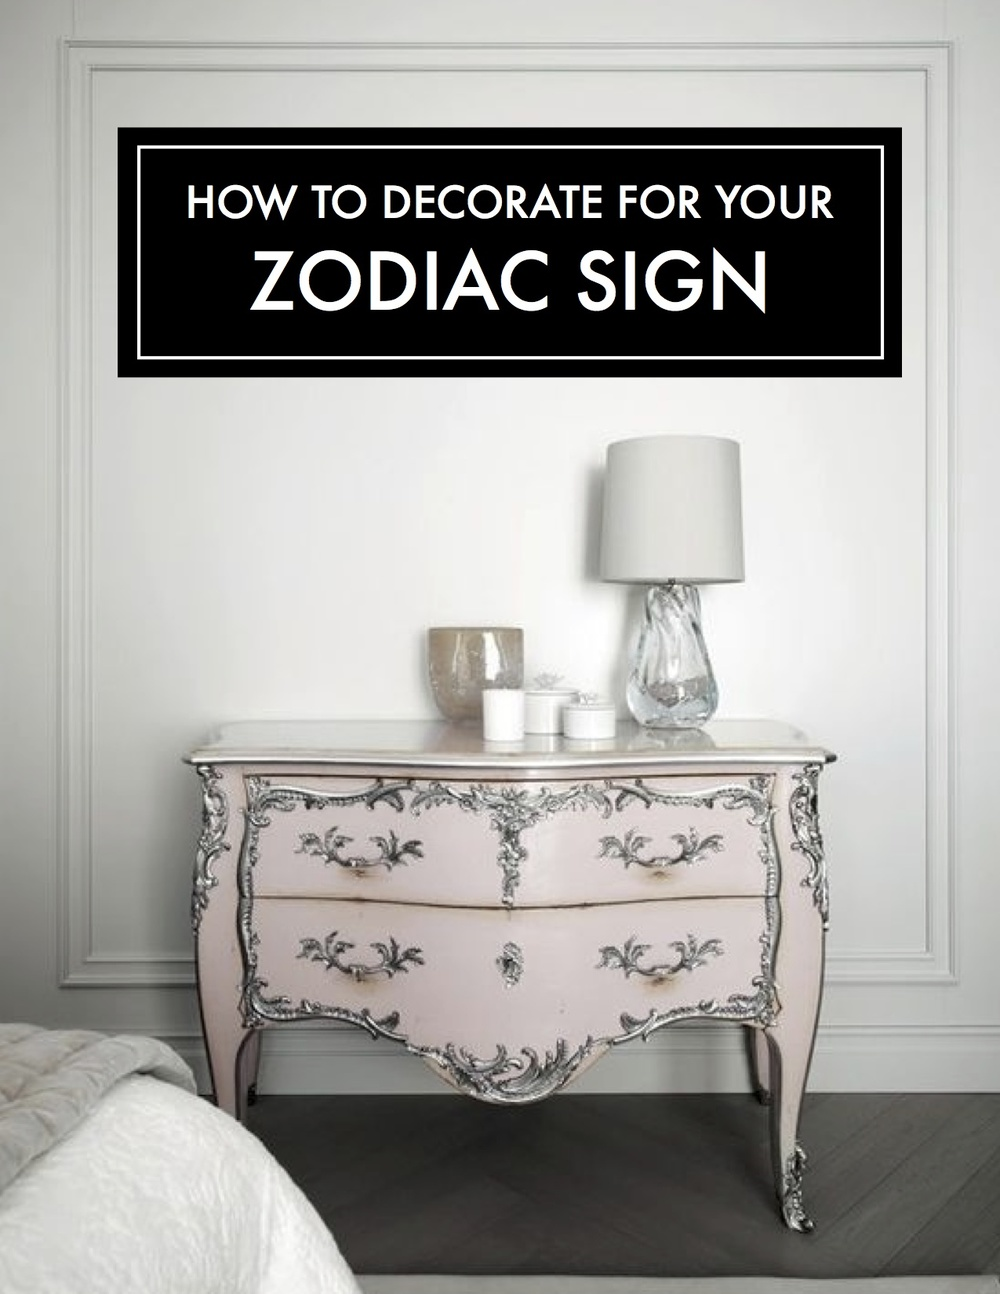 Spring cleaning 101: Re-Decorate for your Zodiac sign — The Decorista